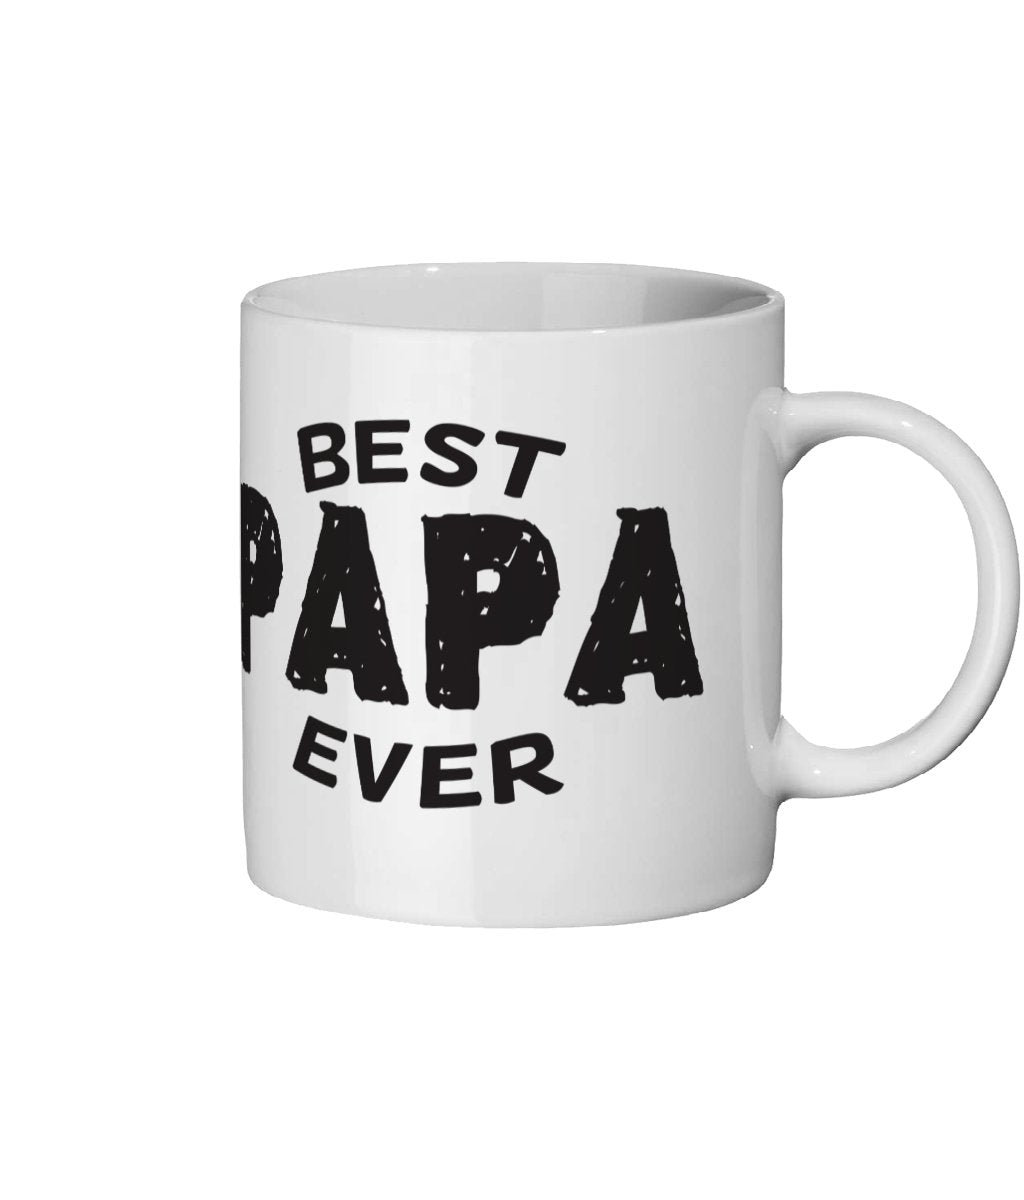 Best Papa Ever Ceramic Mug 11oz - The Gift Project